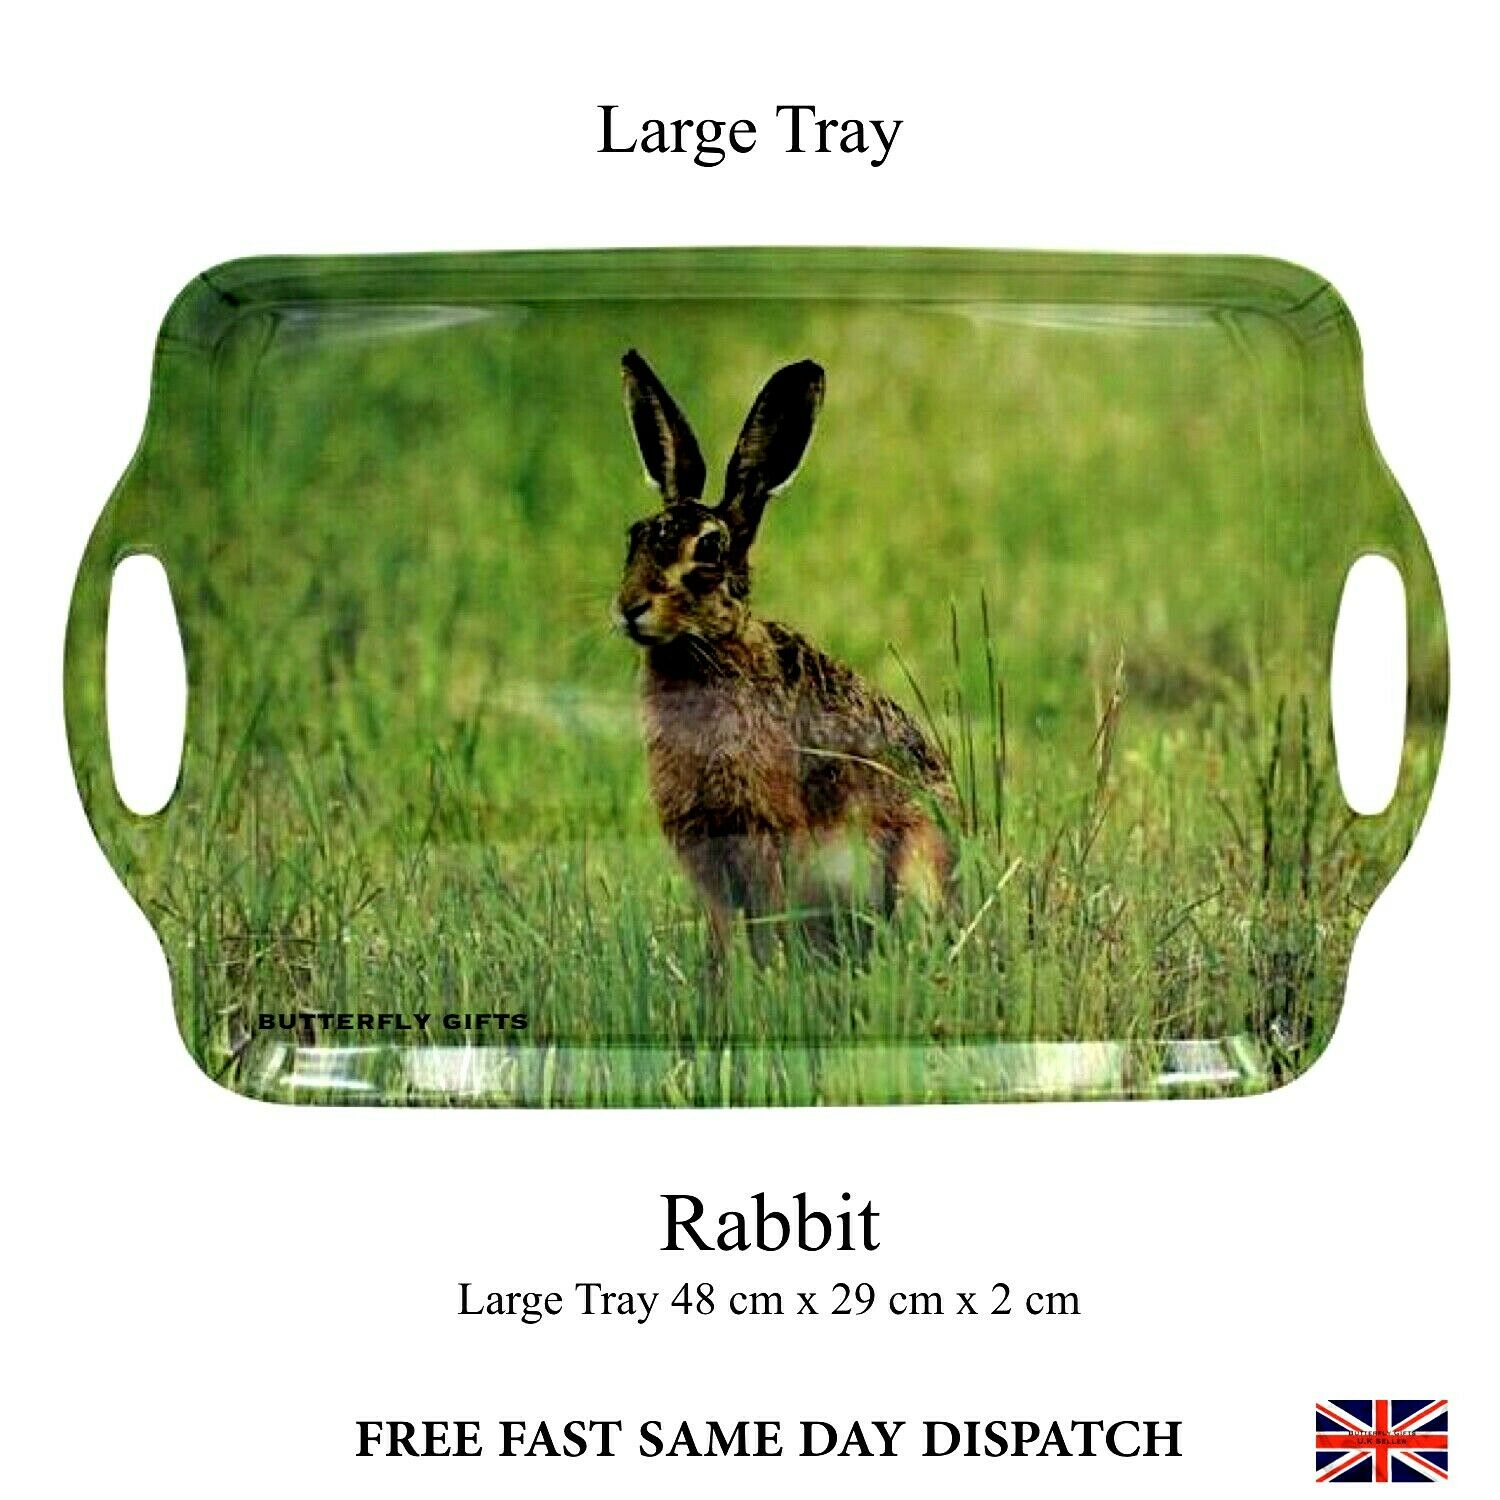 Hare Large Tray 989